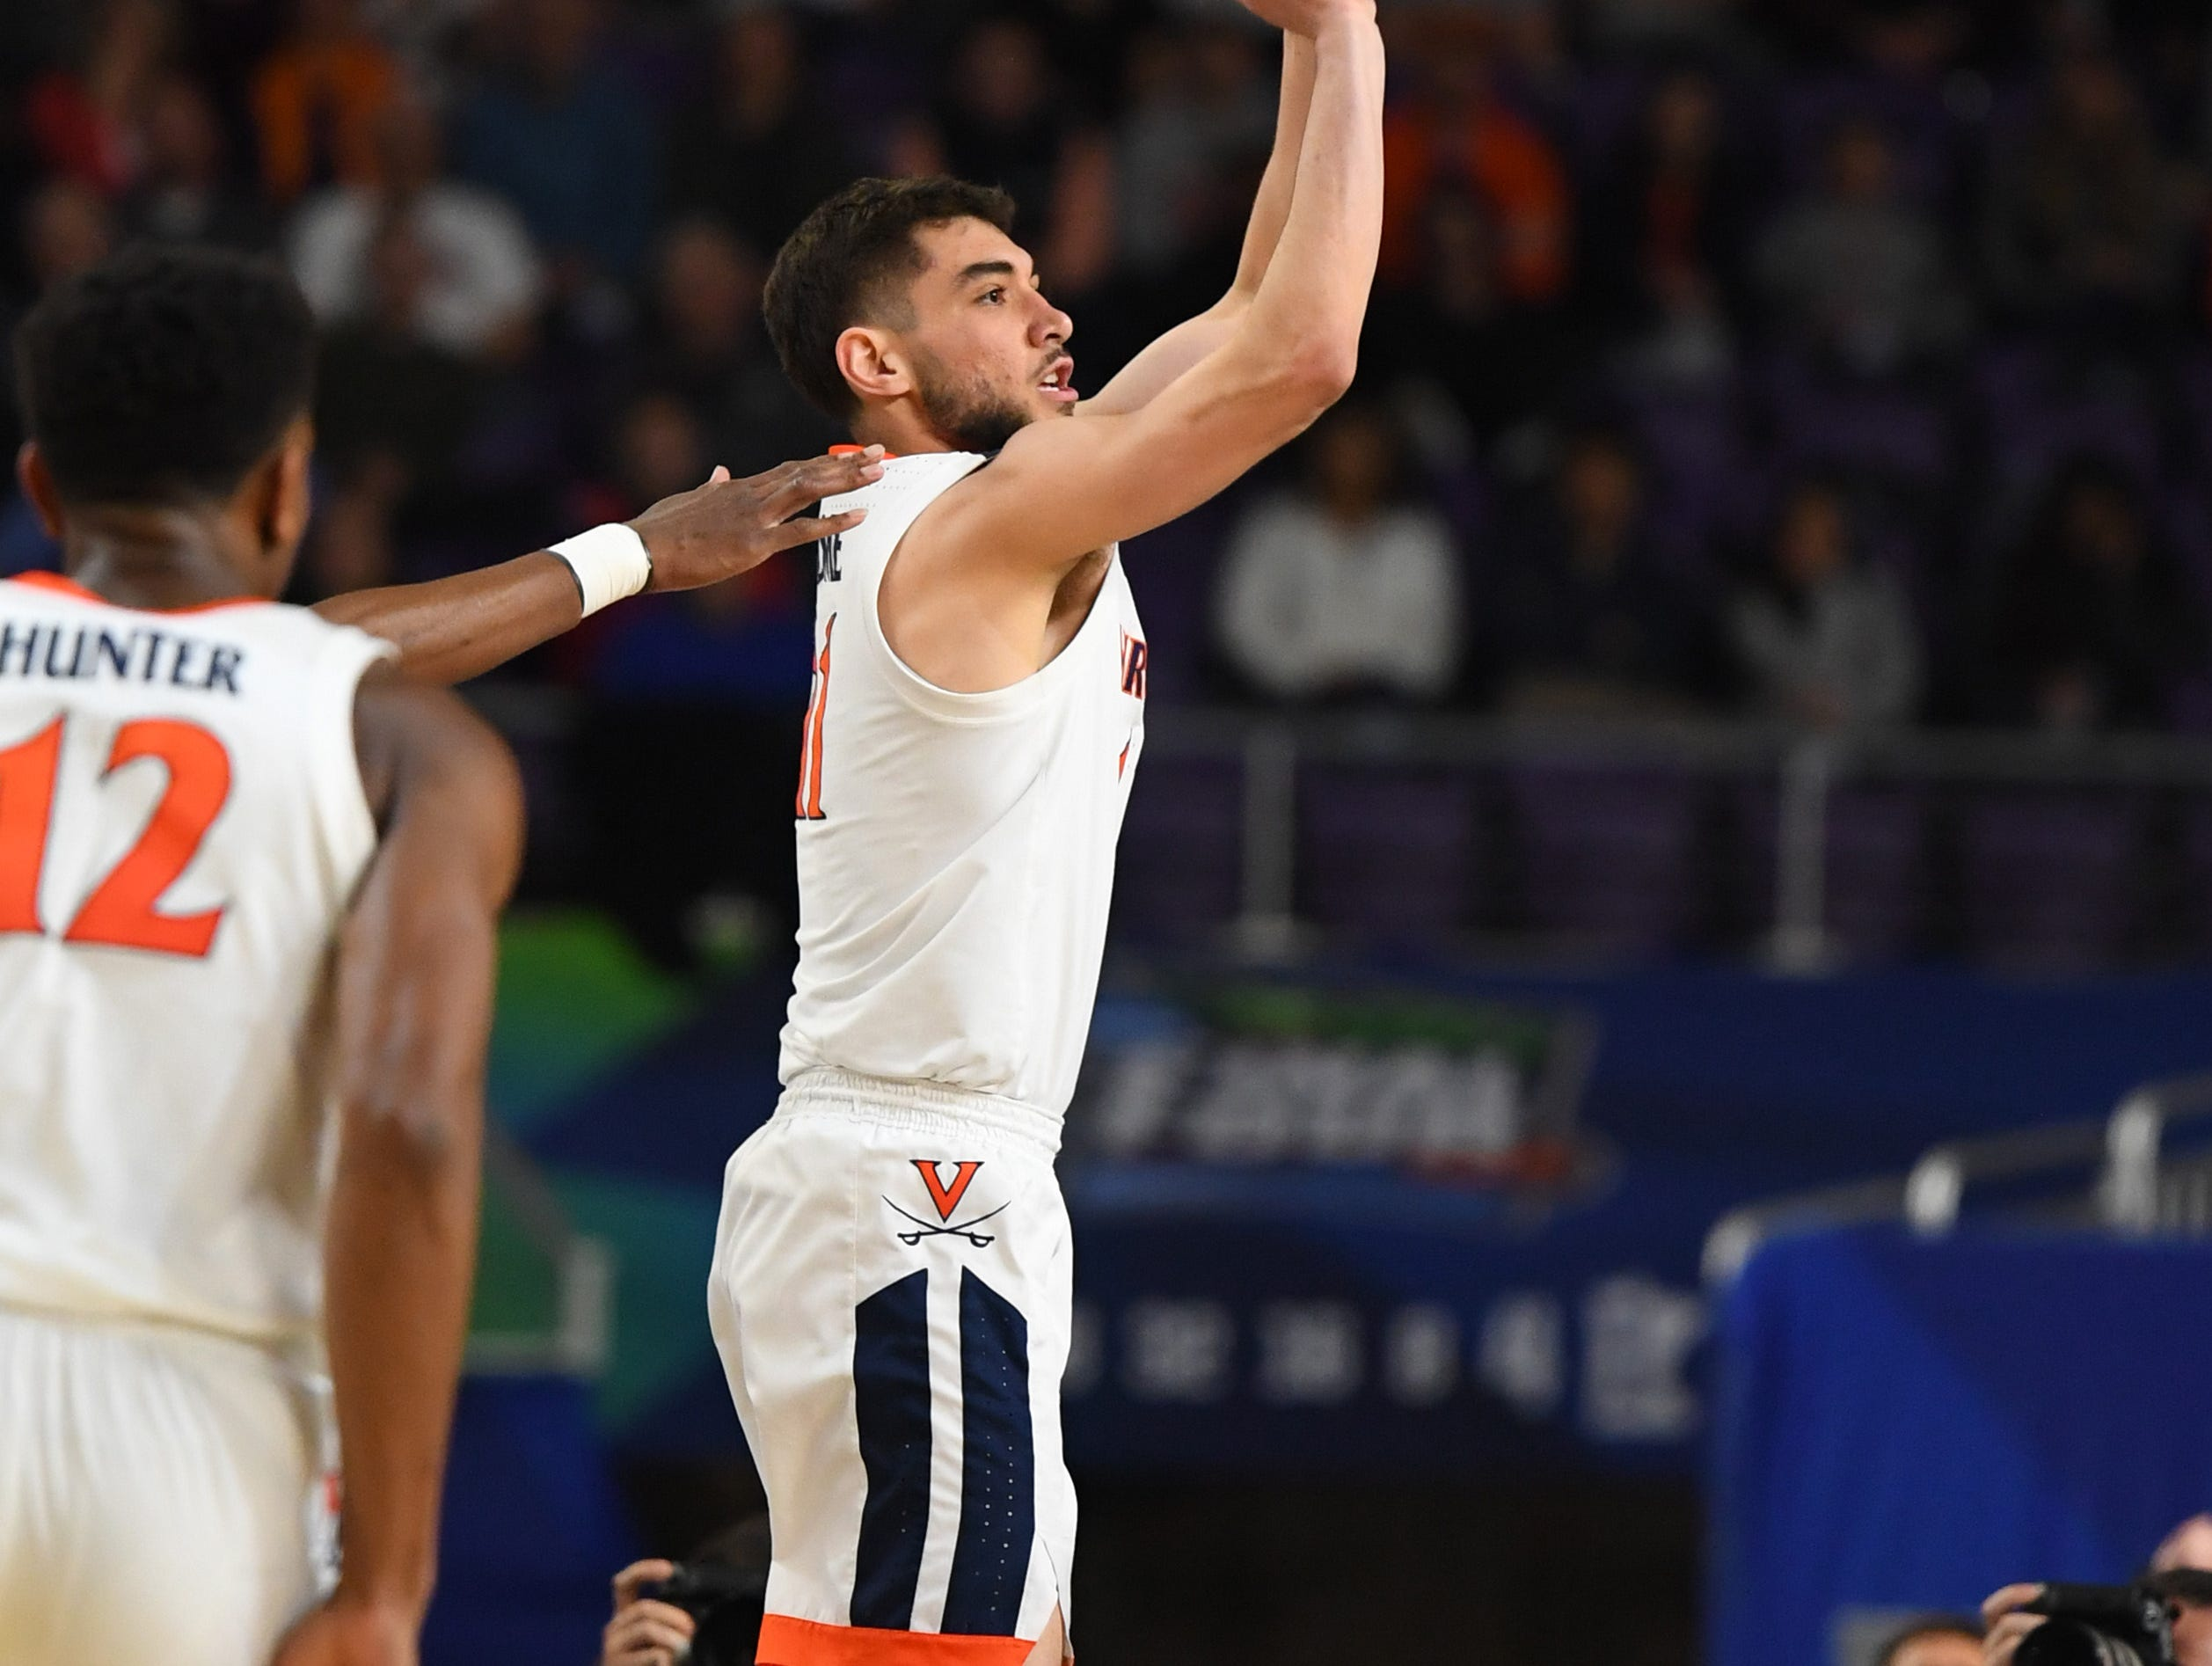 Apr 8, 2019; Minneapolis, MN, USA; Virginia Cavaliers guard Ty Jerome (11) hits a three-point shot against the Texas Tech Red Raiders in the championship game of the 2019 men's Final Four at US Bank Stadium. Mandatory Credit: Robert Deutsch-USA TODAY Sports